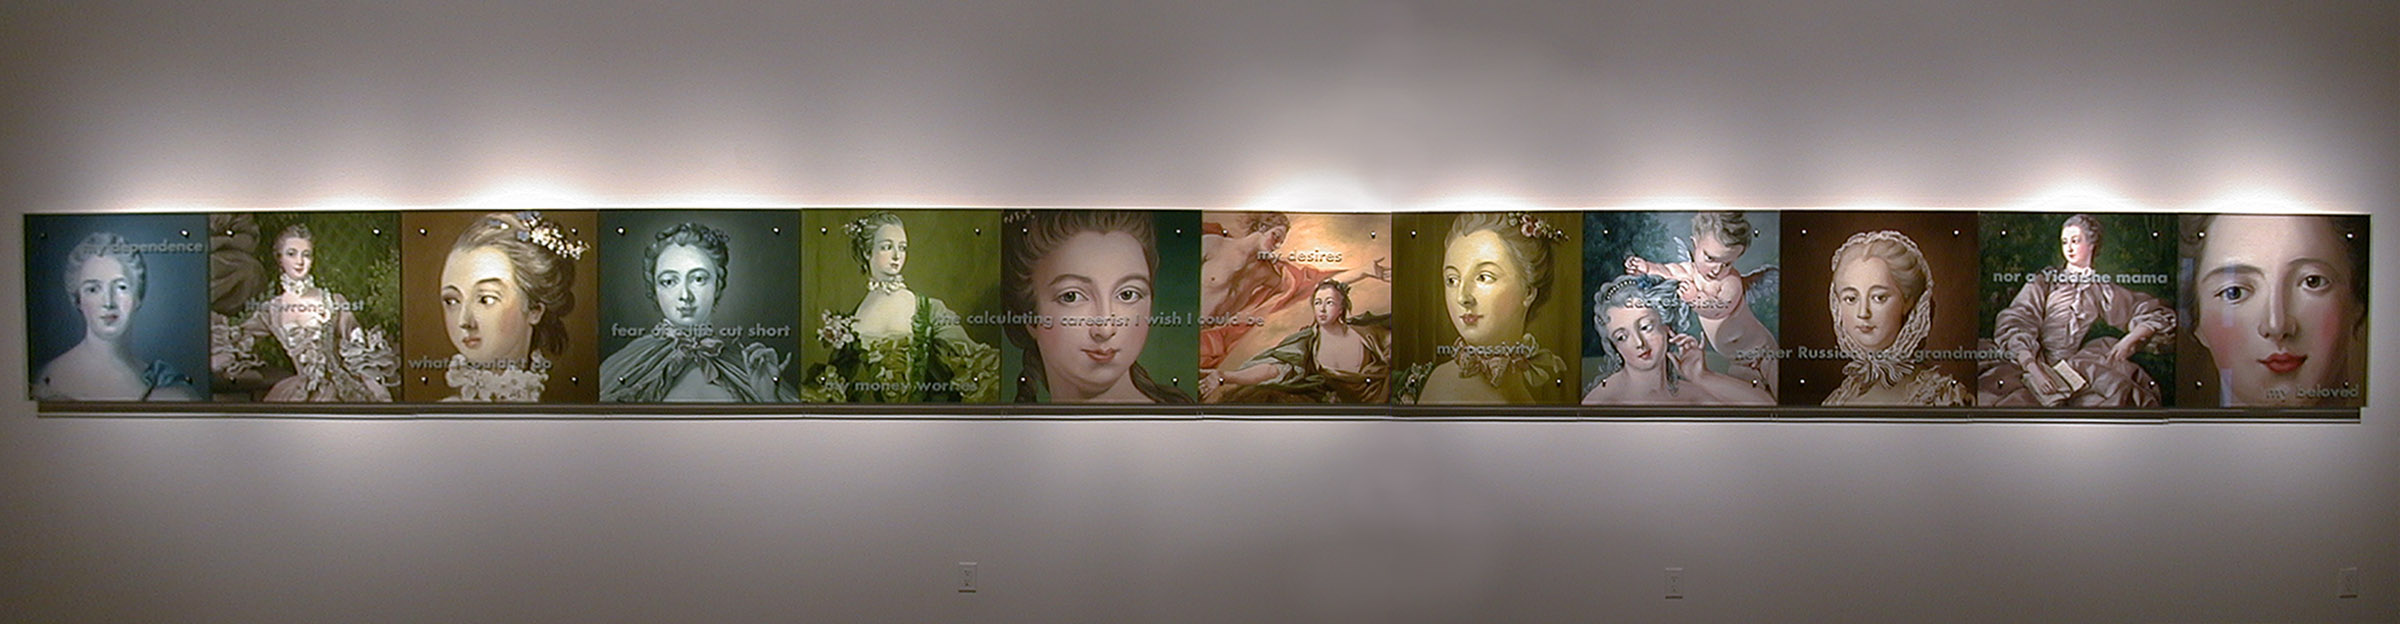 "Reflection, 2003 30"" x 360"" Twelve panels, oil/wood, sandblasted glass, bolts After (l to r) Jean-Marc Nattier, Madame de Pompadour as Diana, 1748 Francois Boucher, Madame de Pompadour, 1759 Francois Boucher, Portrait of Madame de Pompadour Standing, c. 1750 Francois Boucher, Madame de Pompadour at her toilette, 1758 Francois Boucher, Madame de Pompadour, c.1750 Francois Boucher, Madame de Pompadour, c.1750 Francois Boucher, Apollo and Issa, 1750 Francois Boucher, Madame de Pompadour, 1756 Francois Boucher, The Toilette of Venus, 1751 Francois-Hubert Drouais, Madame de Pompadour with a Fur Muff, 1763 Francois Boucher, Madame de Pompadour seated outside, 1758 Jean-Marc Nattier, Madame de Pompadour as Diana, 1748 Text: my dependence, the wrong past, what I couldn't do, fear of a life cut short, my money worries, the calculating careerist I wish I could be, my desires, my passivity, dearest sister, neither Russian nor a Grandmother, nor a Yiddishe mama, my beloved"